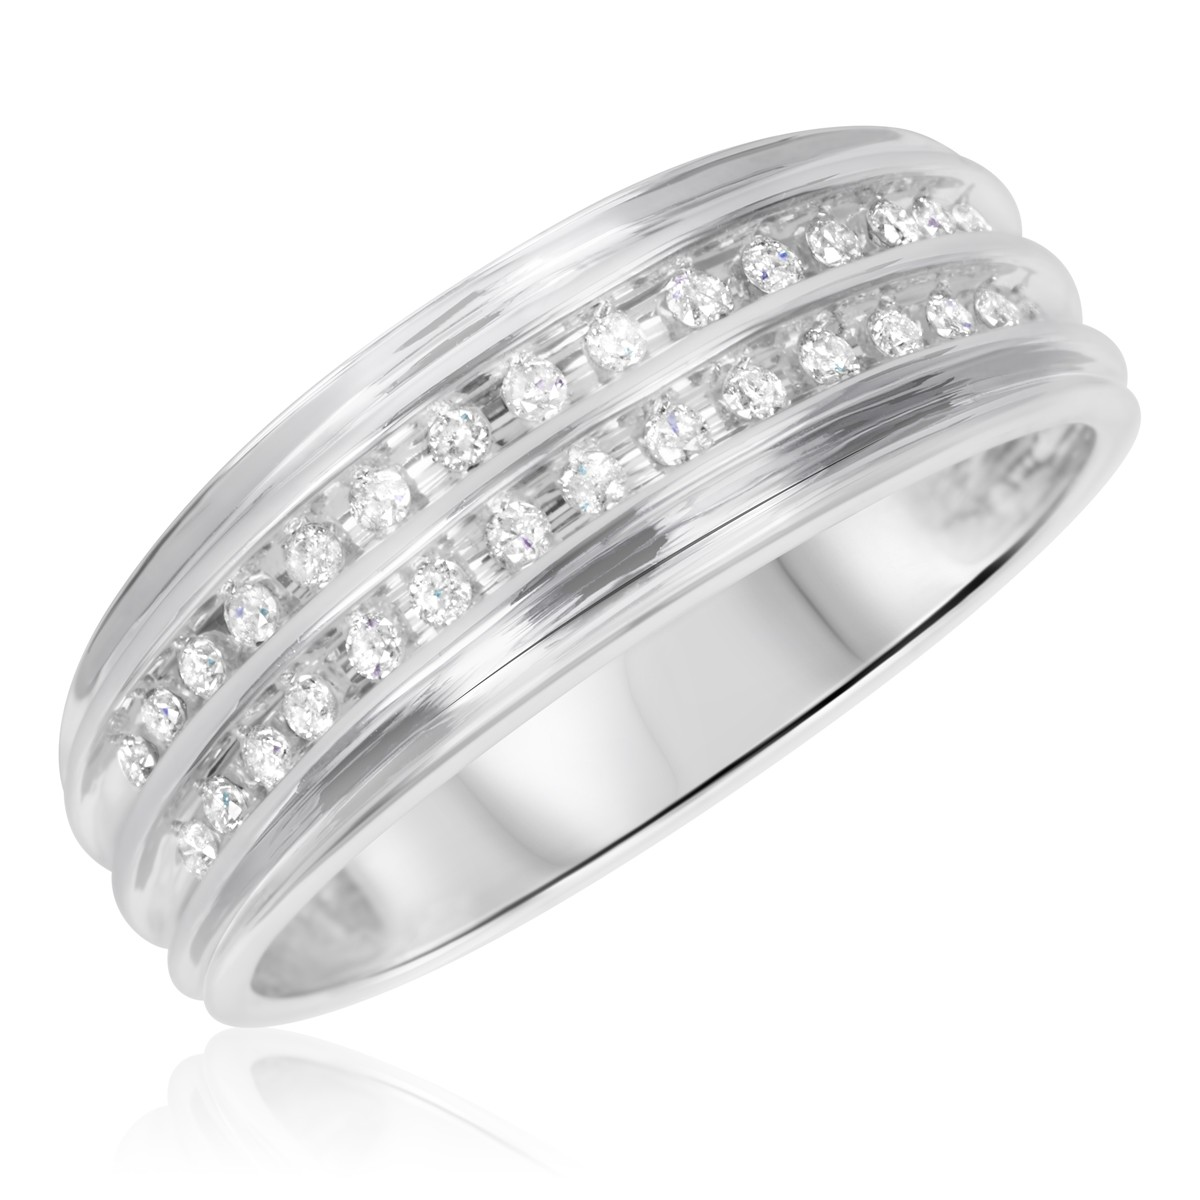 1/3 CT. T.W. Diamond Men's Wedding Band 10K White Gold